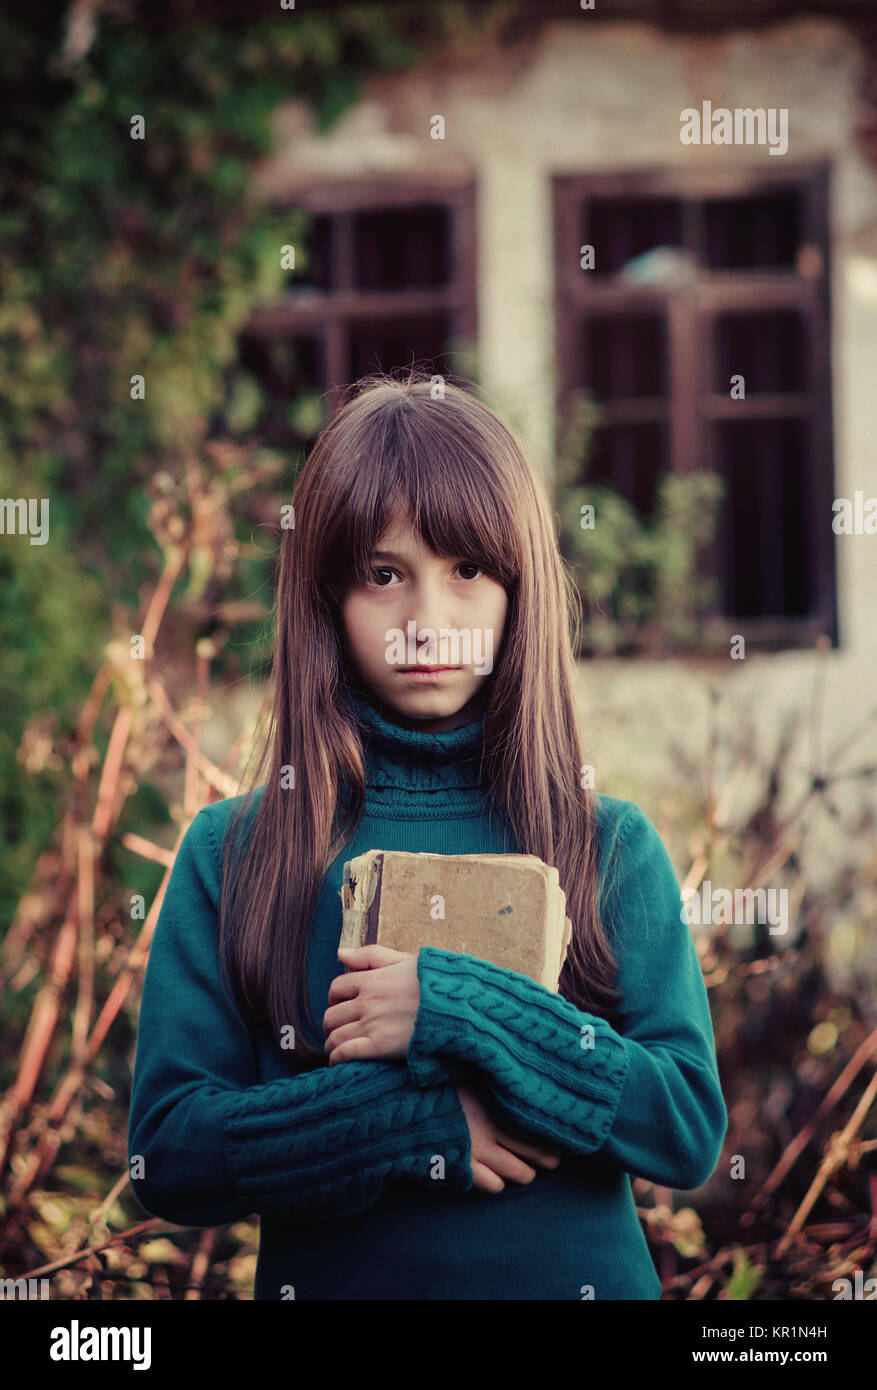 Conceptual portrait of a young girl in front of a desolated house, holding an old book. - Stock Image